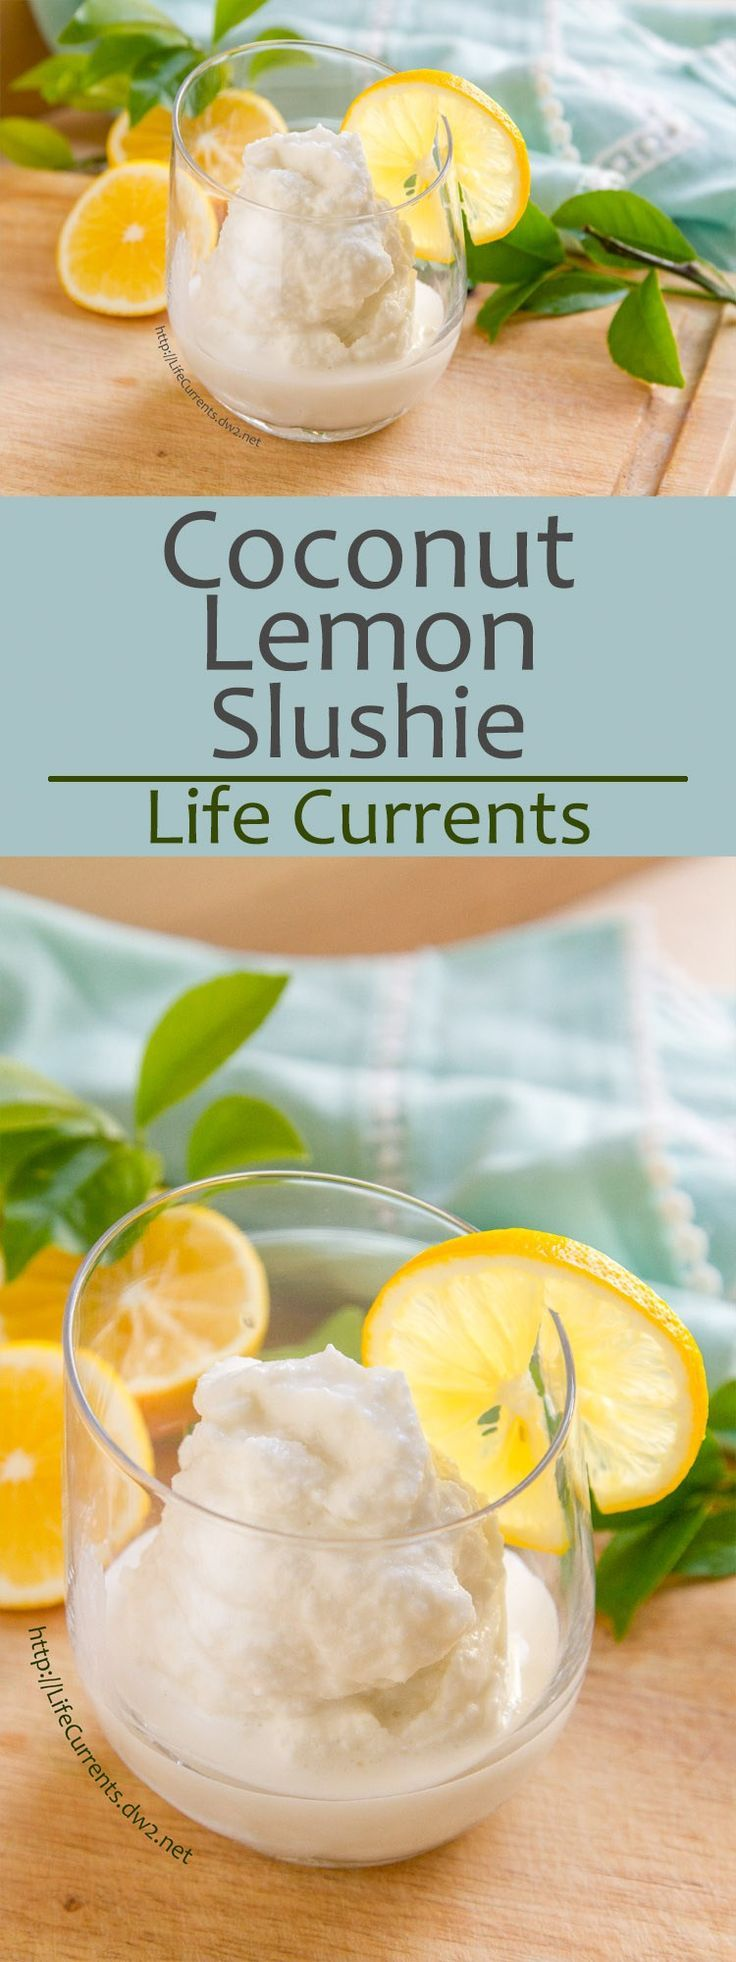 Coconut Lemon Slushie -- a refreshing creamy frozen coconut lemonade treat that's super easy to make, even the kids will jump in! by Life Currents